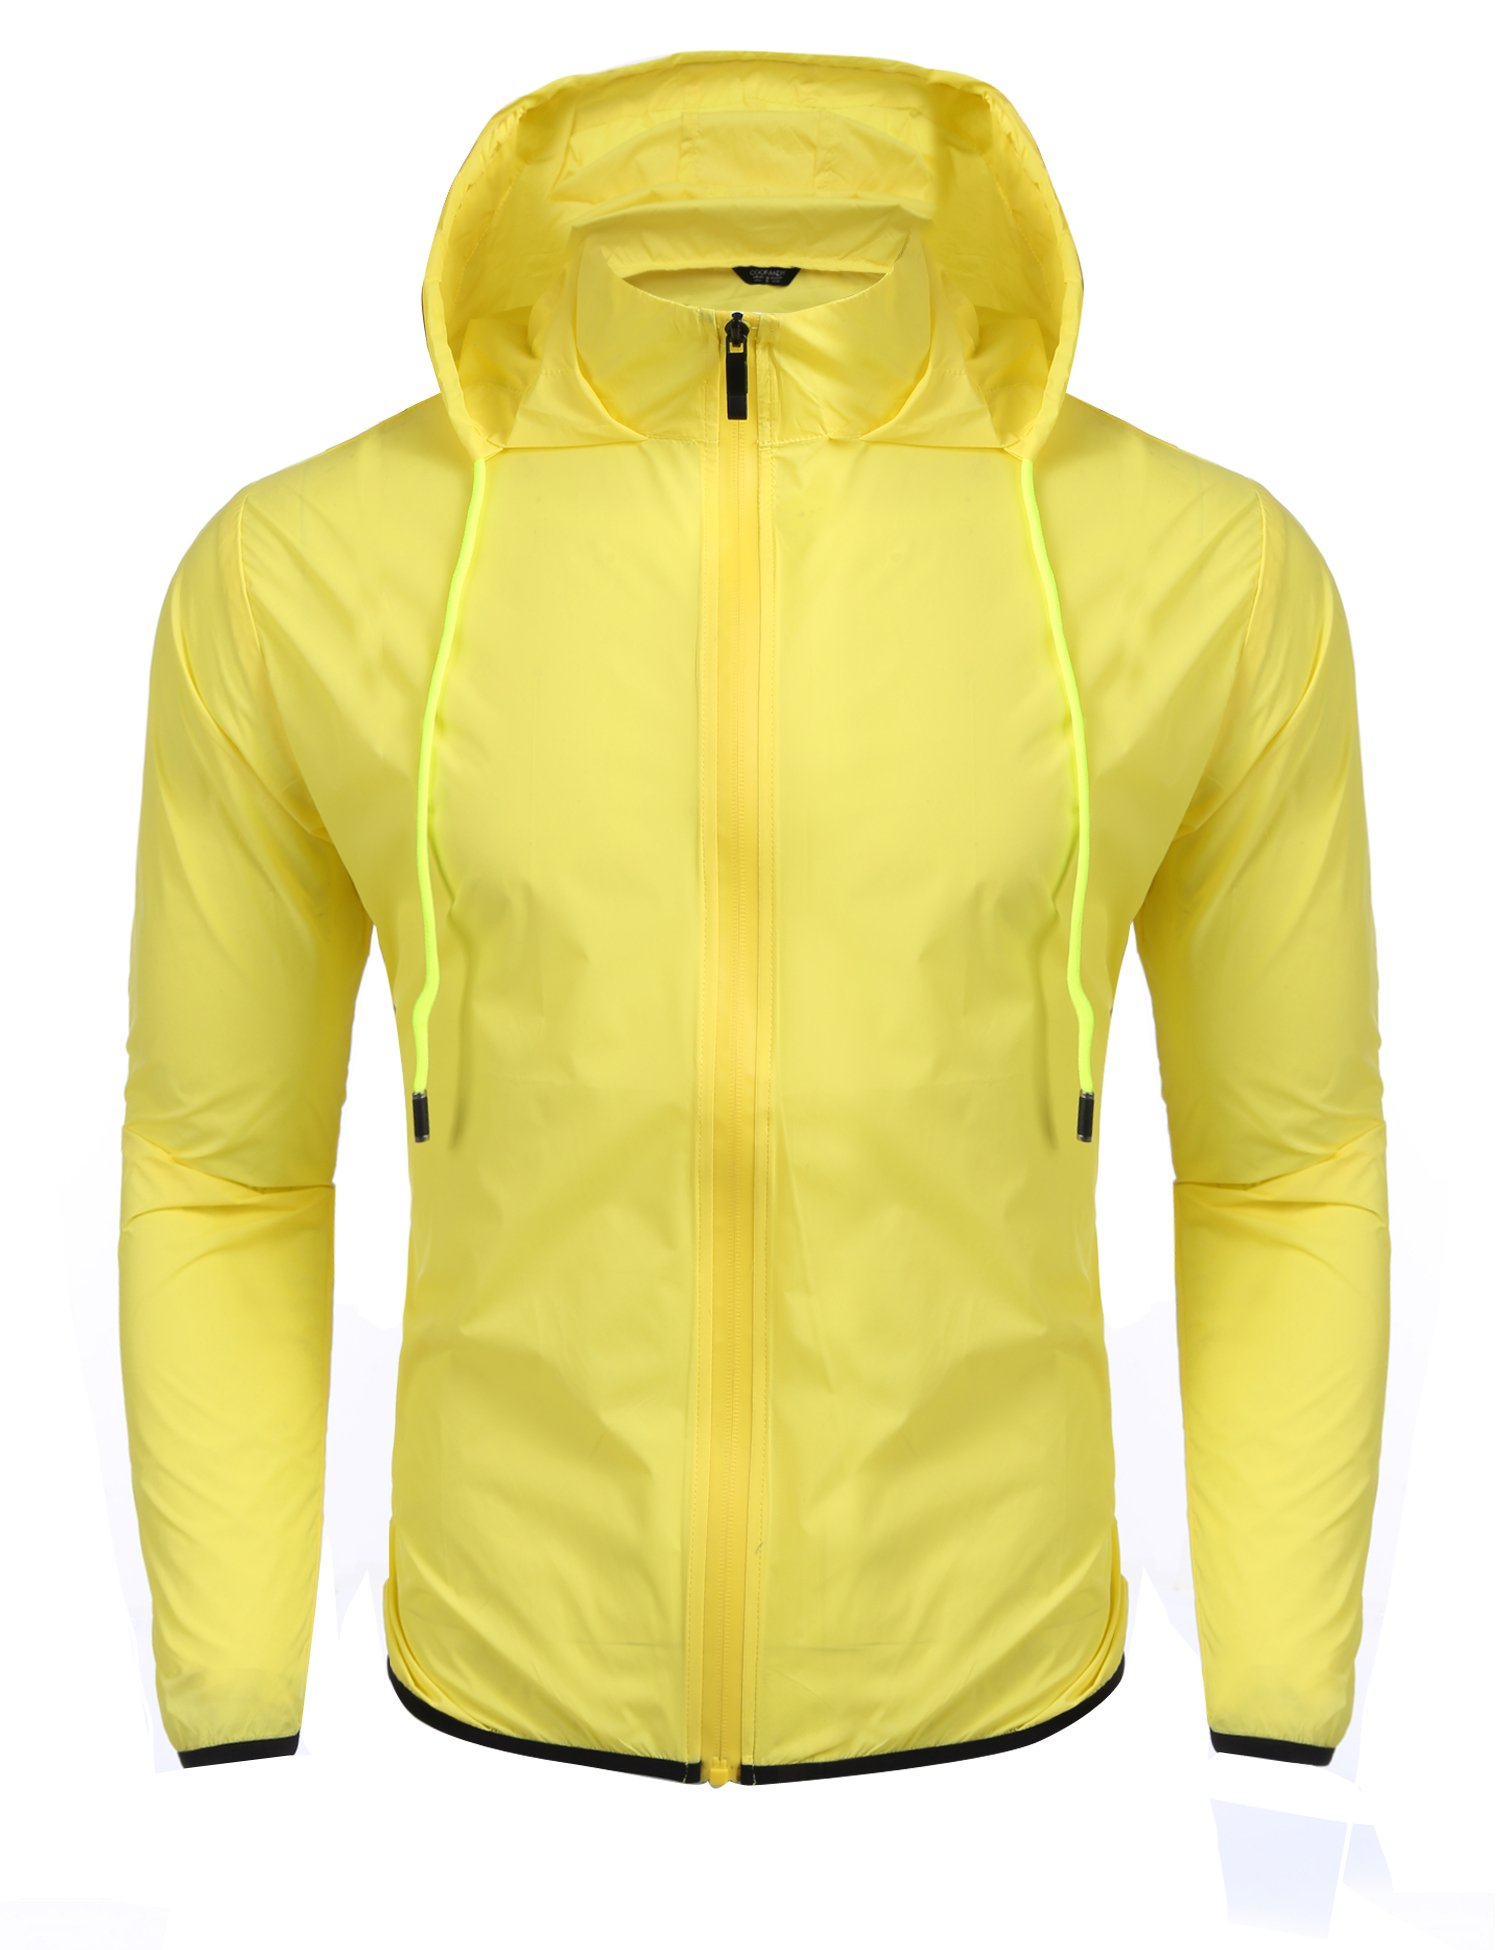 Coofandy Unisex Lightweight Hooded Running Cycling Rain Jacket Outdoor Raincoat, Yellow, XX-Large by COOFANDY